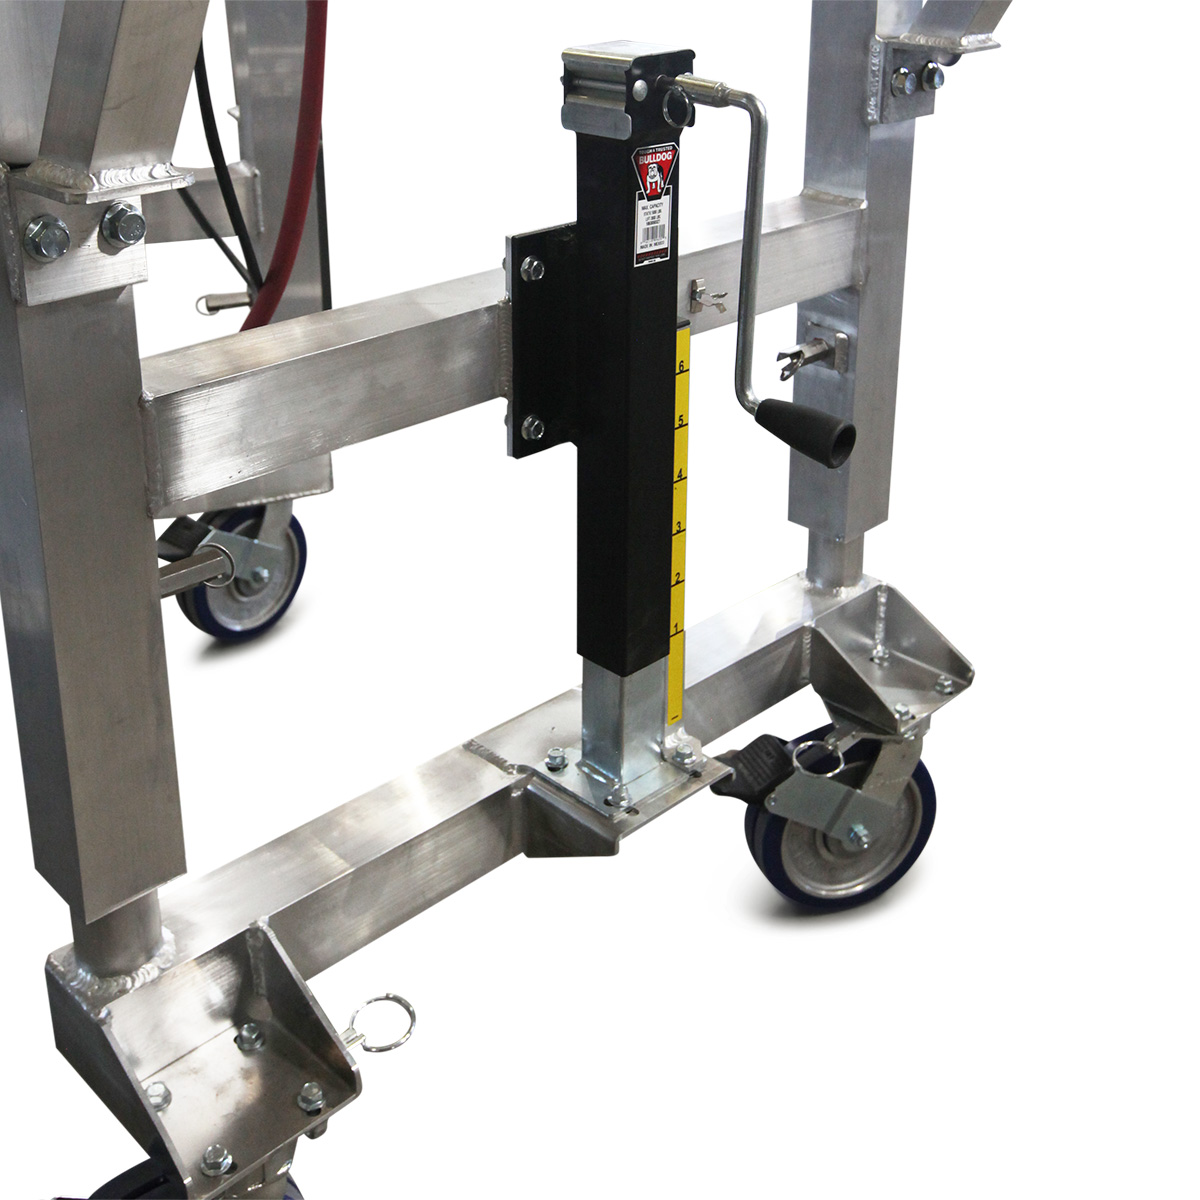 OSHA compliant, height-adjustable aluminum work stand with linked jacks requiring 50% less labor to raise and lower.